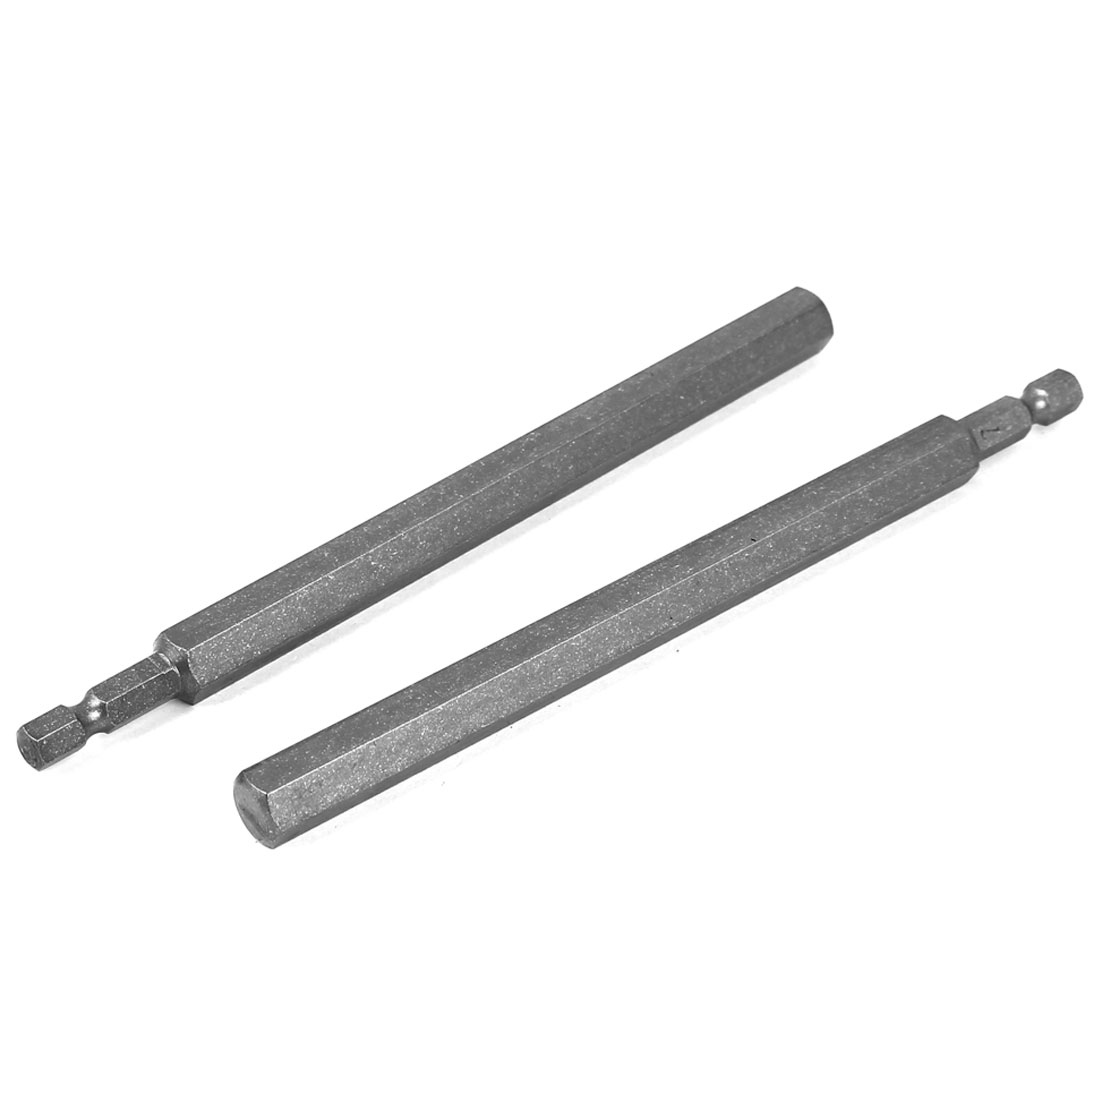 150mm Length 10mm Tip Hexagon Magnetic Screwdriver Insert Bits Gray 2 Pcs